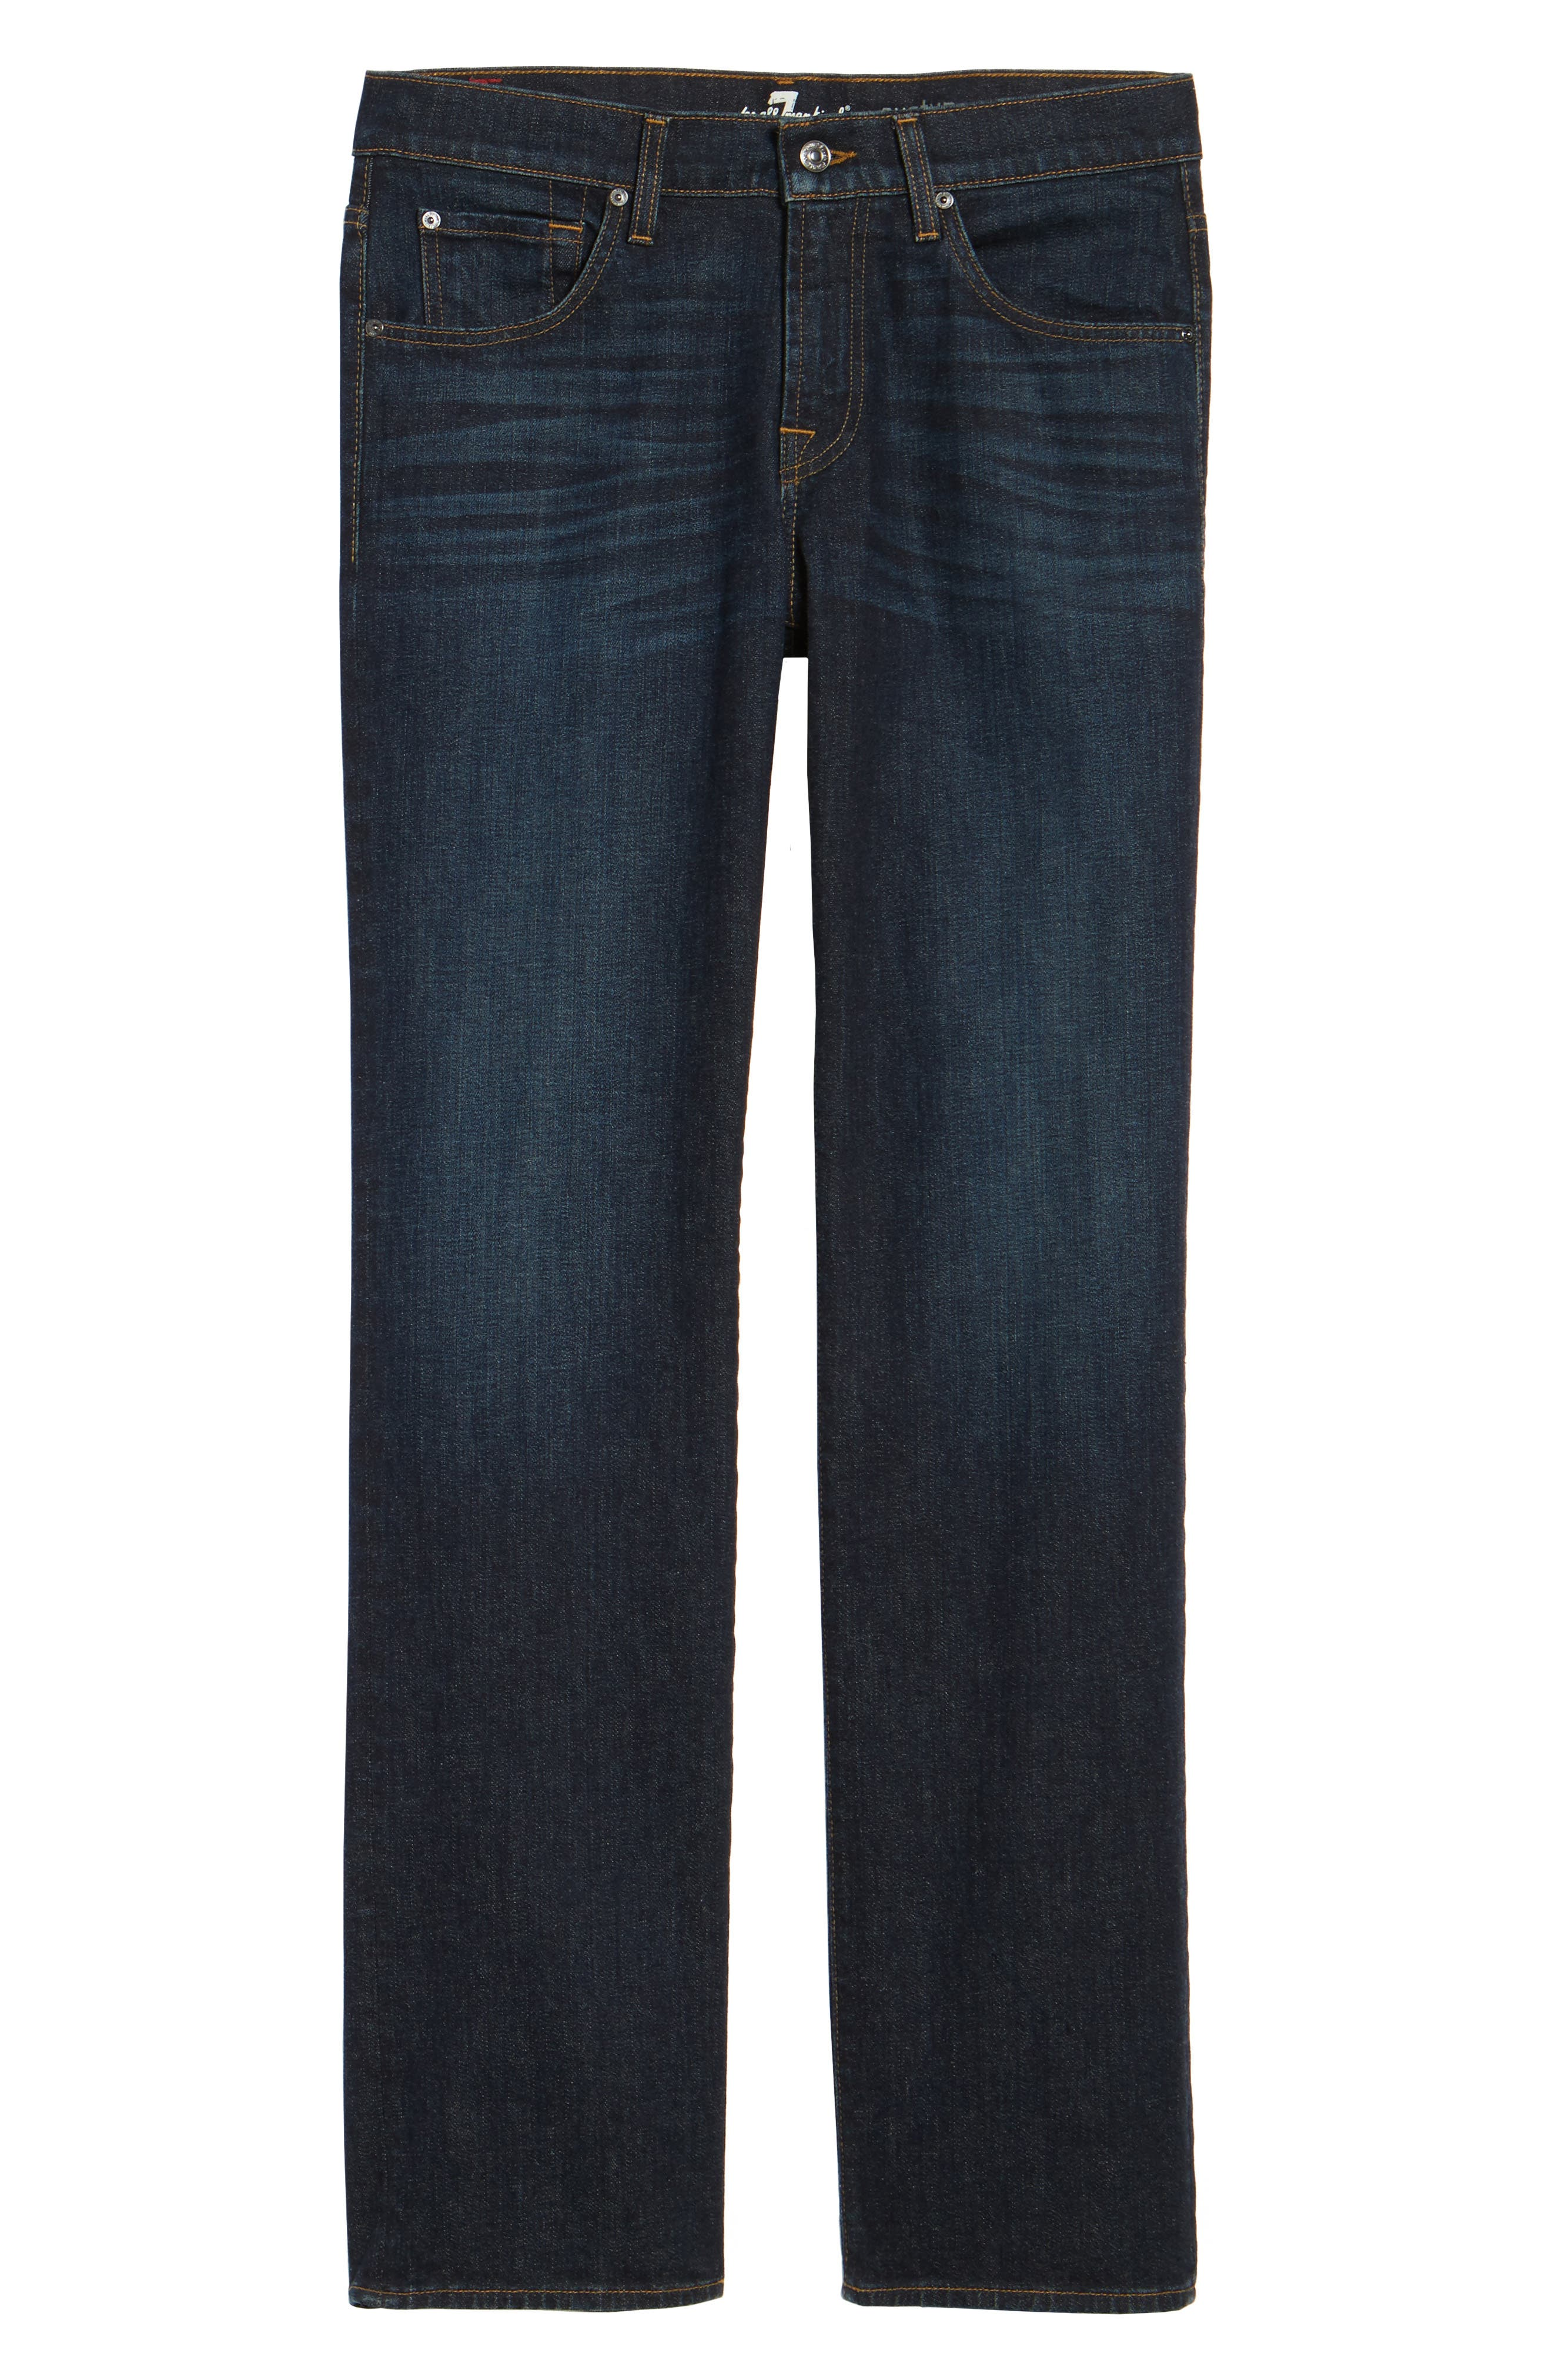 Austyn Relaxed Fit Jeans,                             Alternate thumbnail 6, color,                             Pike